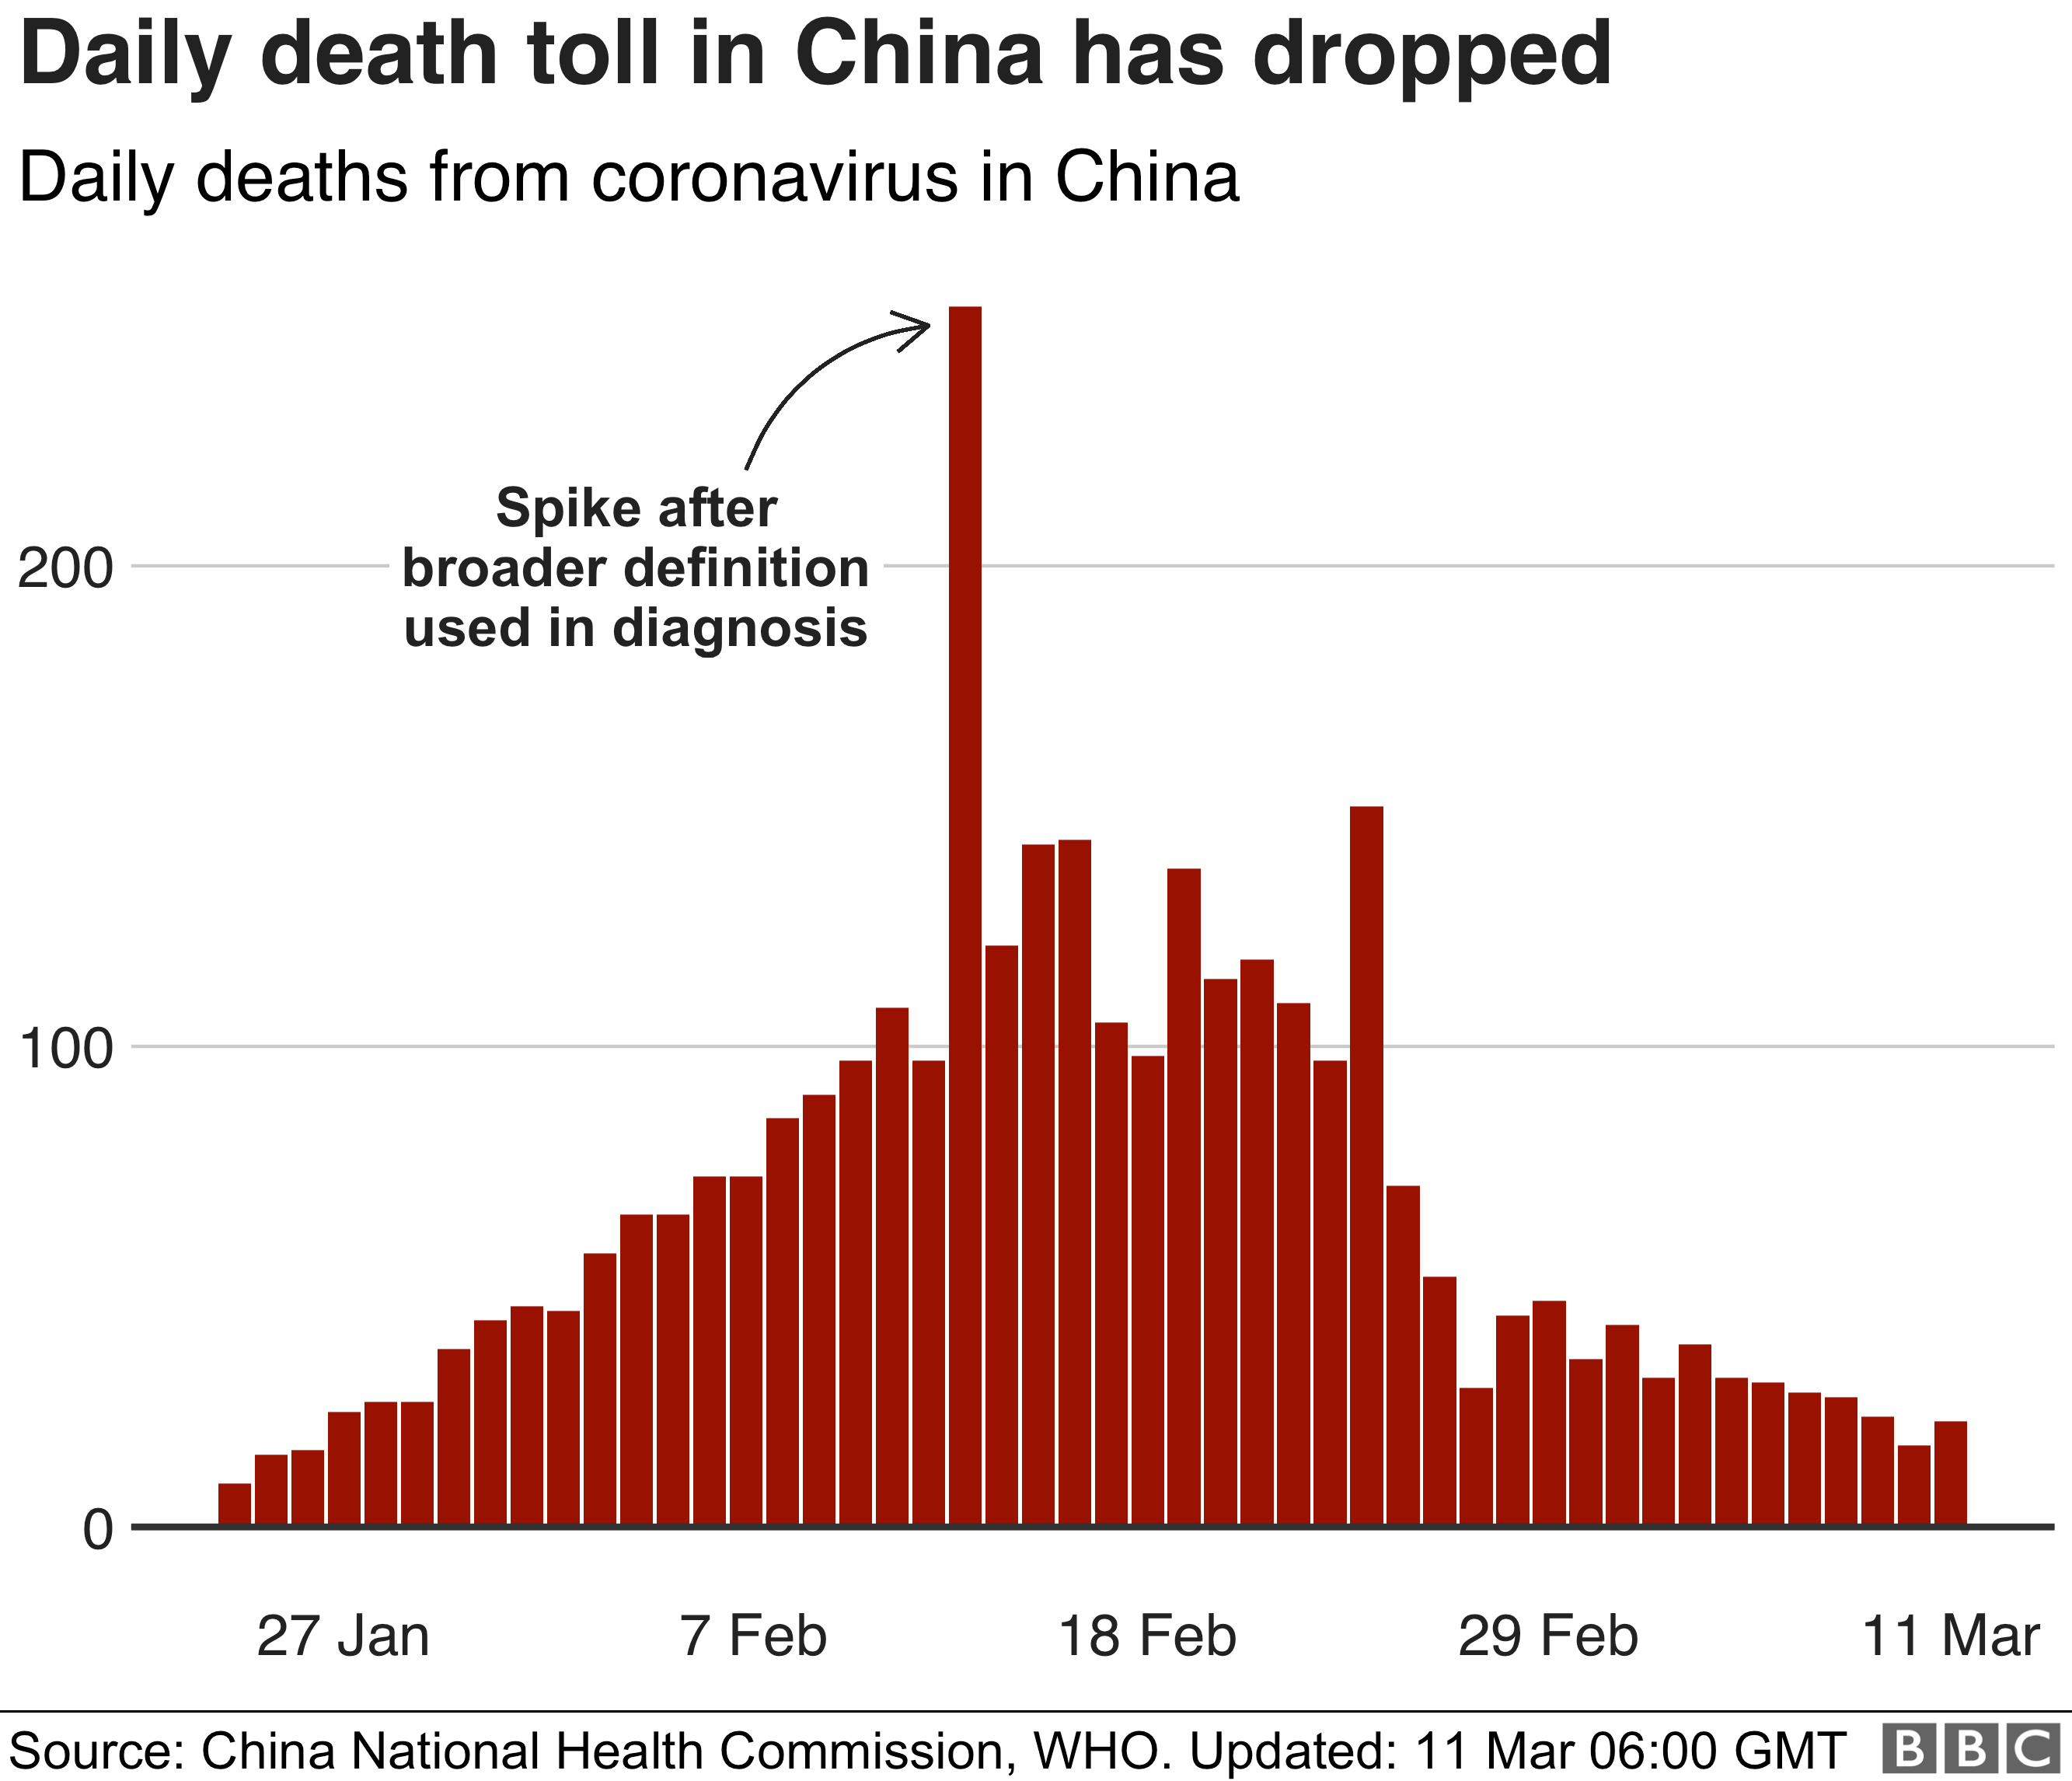 Chart showing the daily death toll in China, which has been falling in recent days 11 March